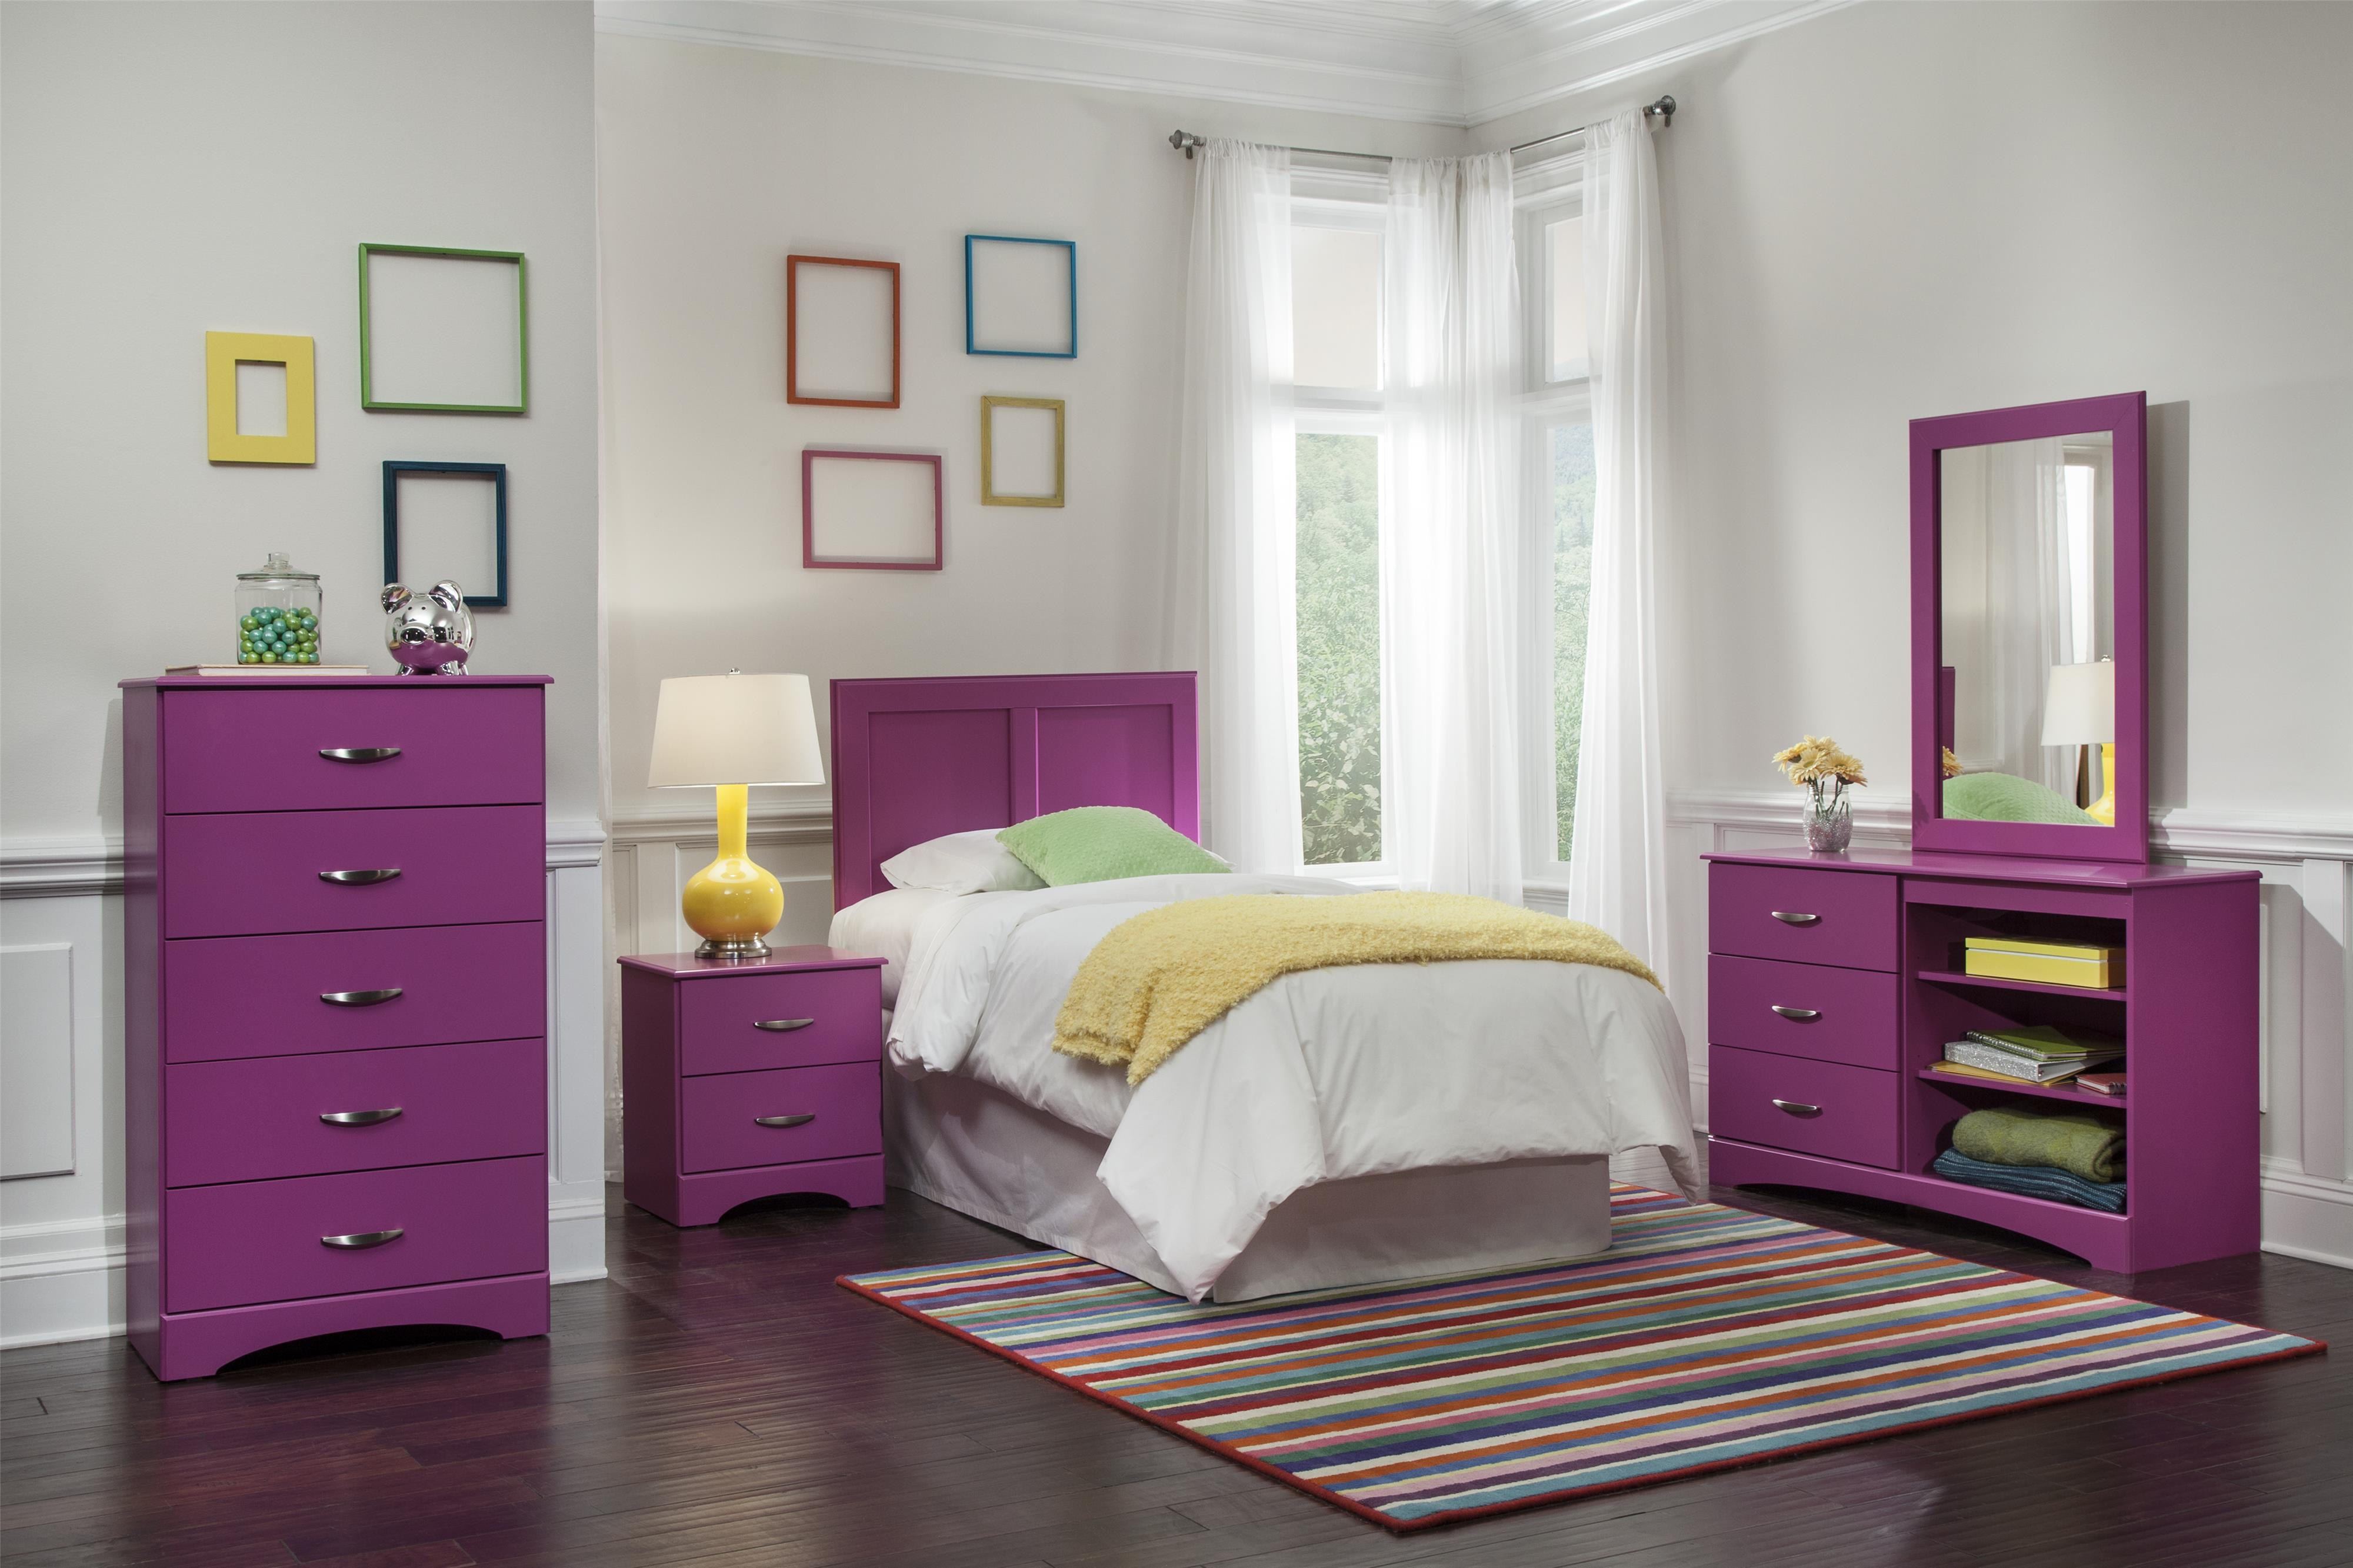 Kith Furniture 171 Raspberry Full Bedroom Group - Item Number: 171 F Bedroom Group 1